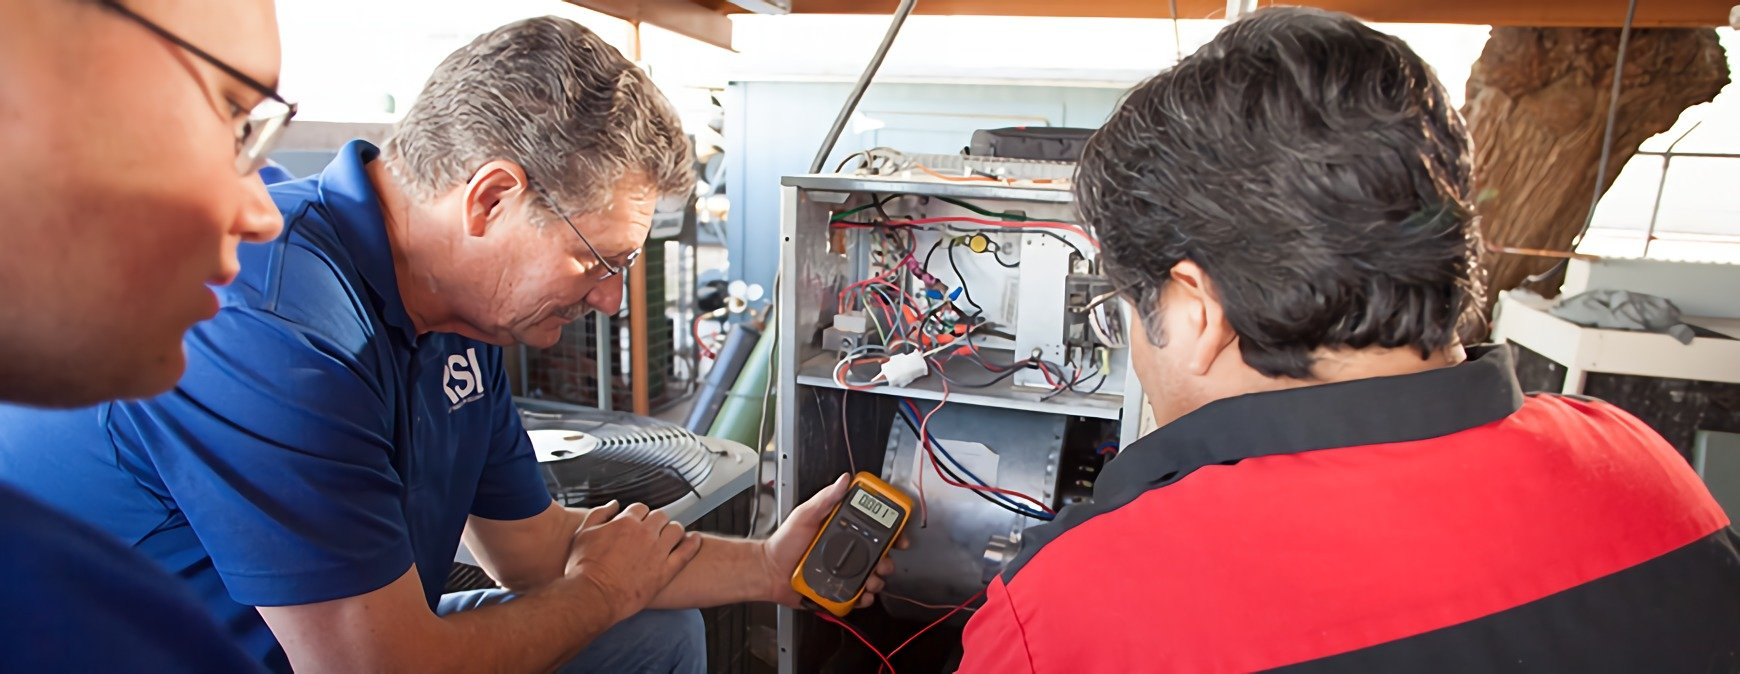 vocational training hvac